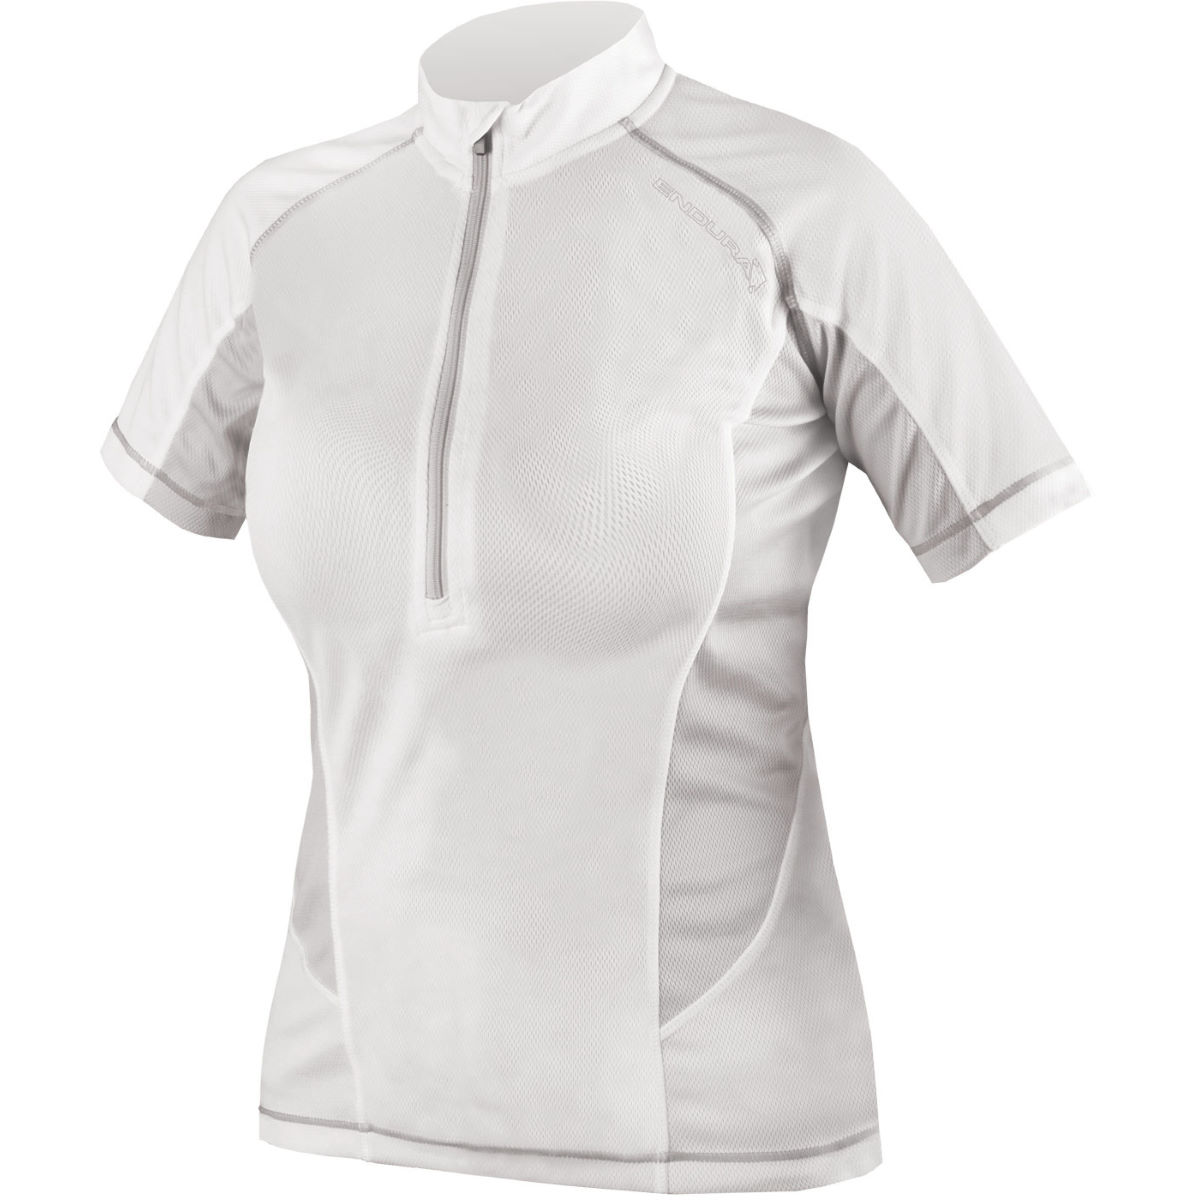 Endura Womens Pulse Jersey   Jerseys